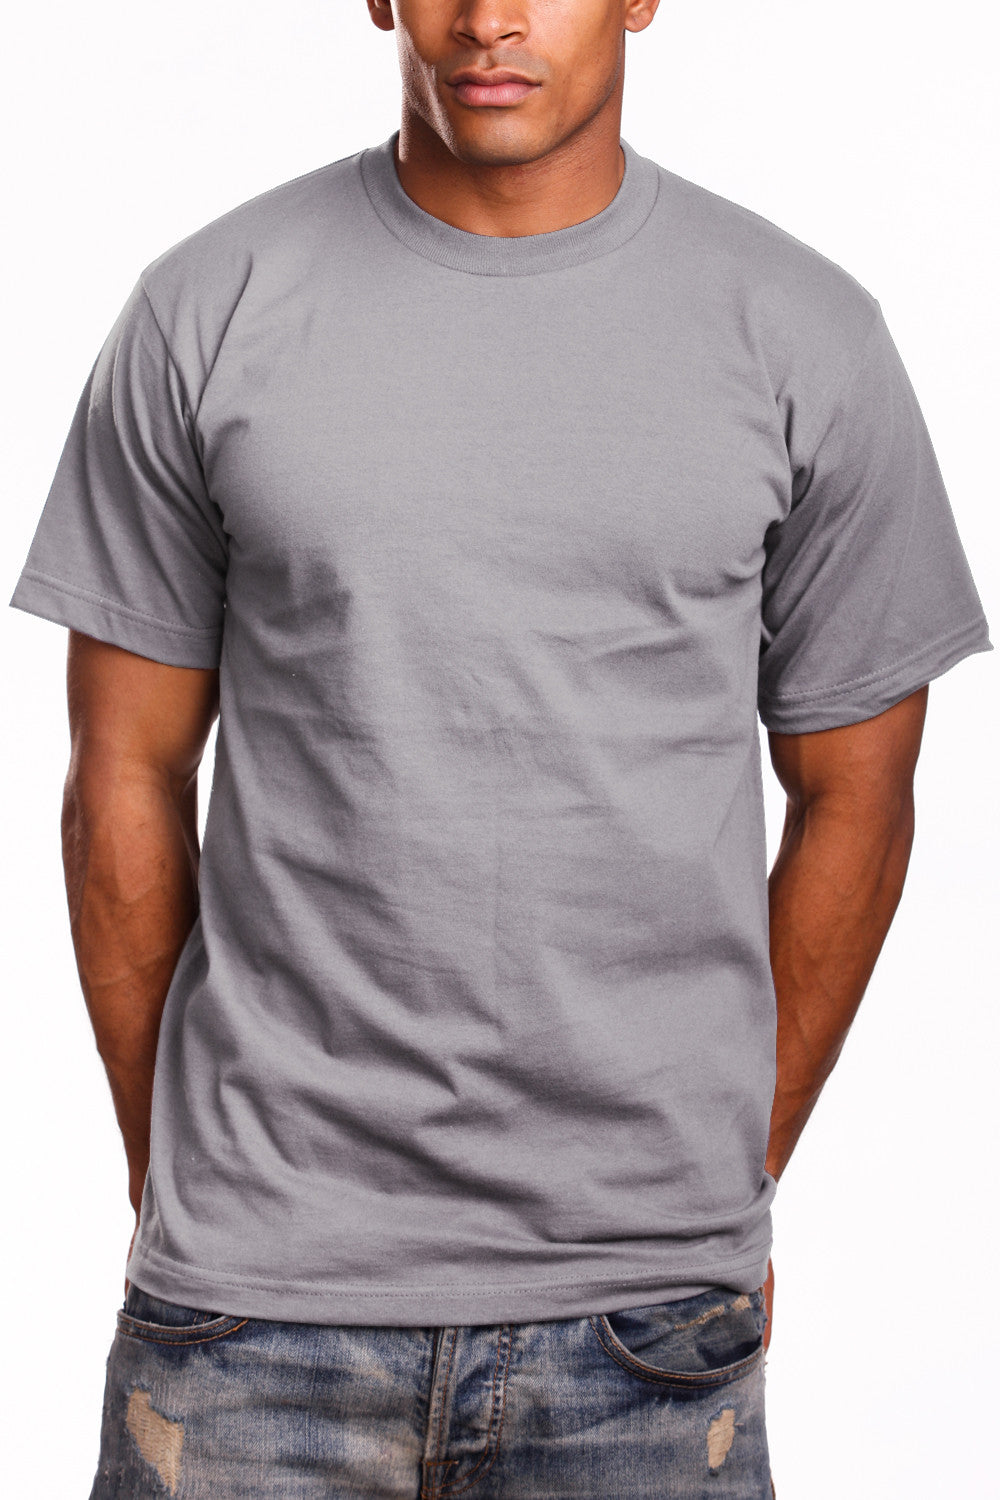 Mens Super Heavy T-Shirt Tee Shirts Tall Size Heather Grey